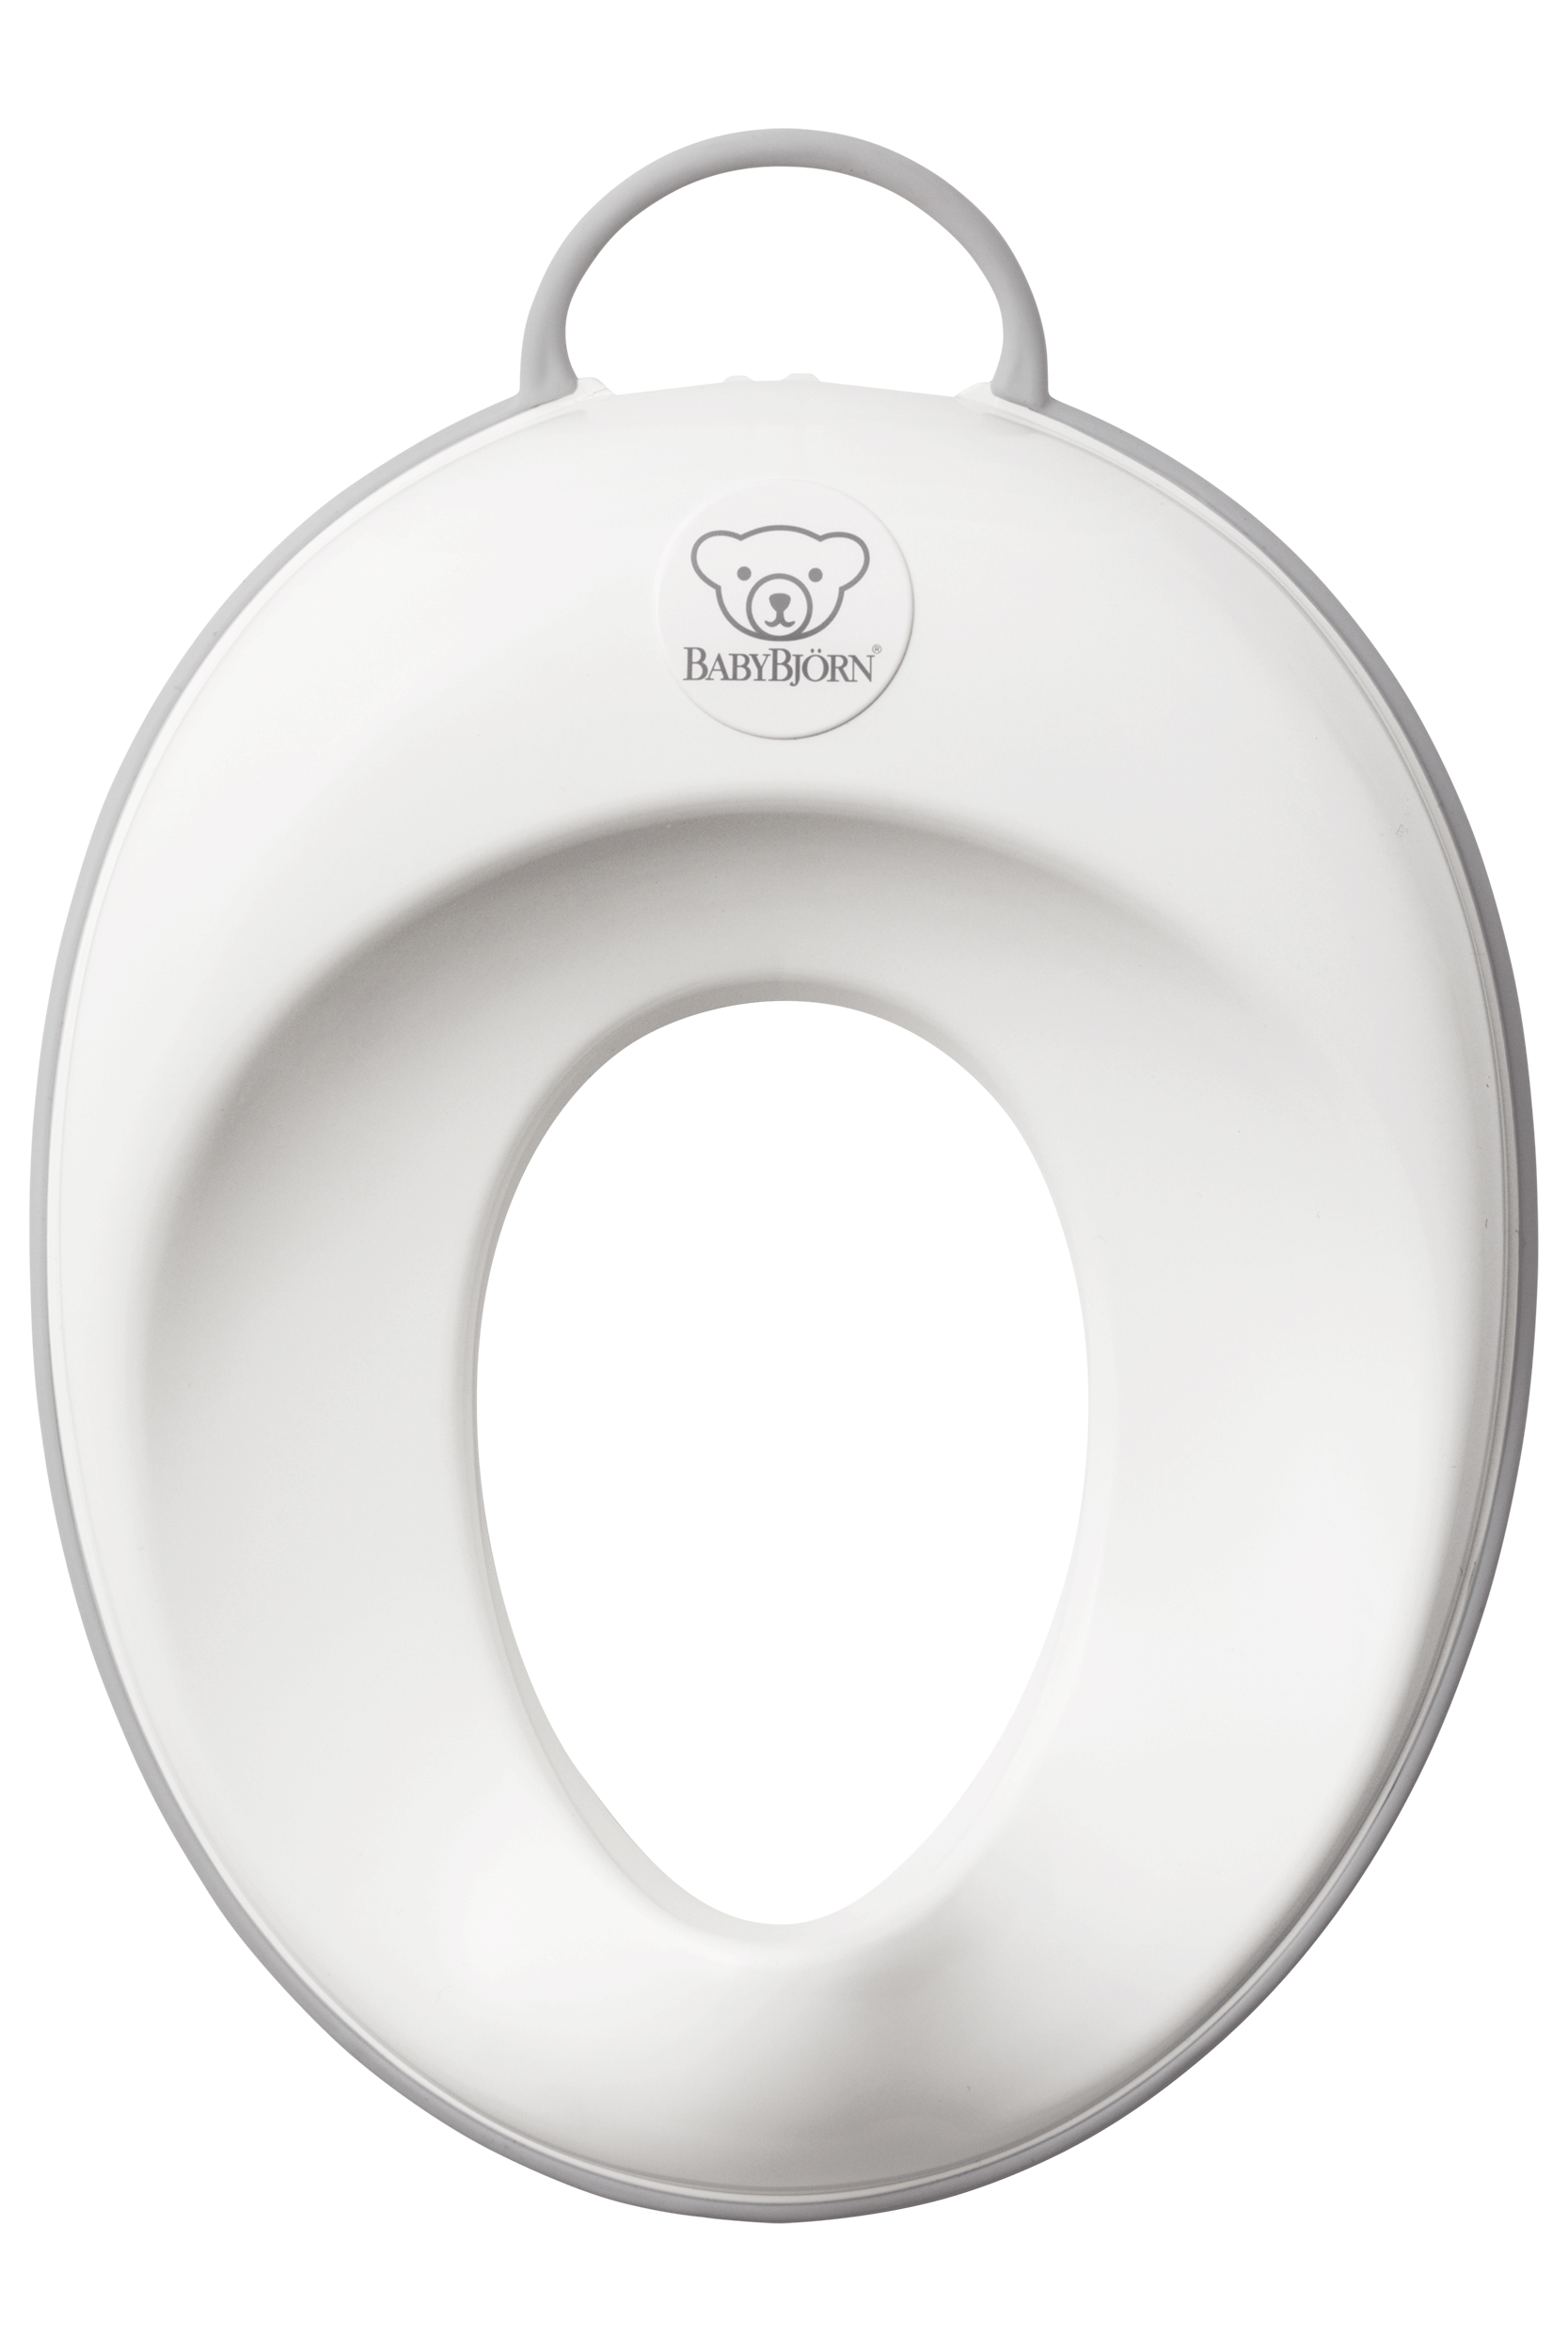 Toilet Training Seat Comfy Amp Easy To Use Babybj 214 Rn